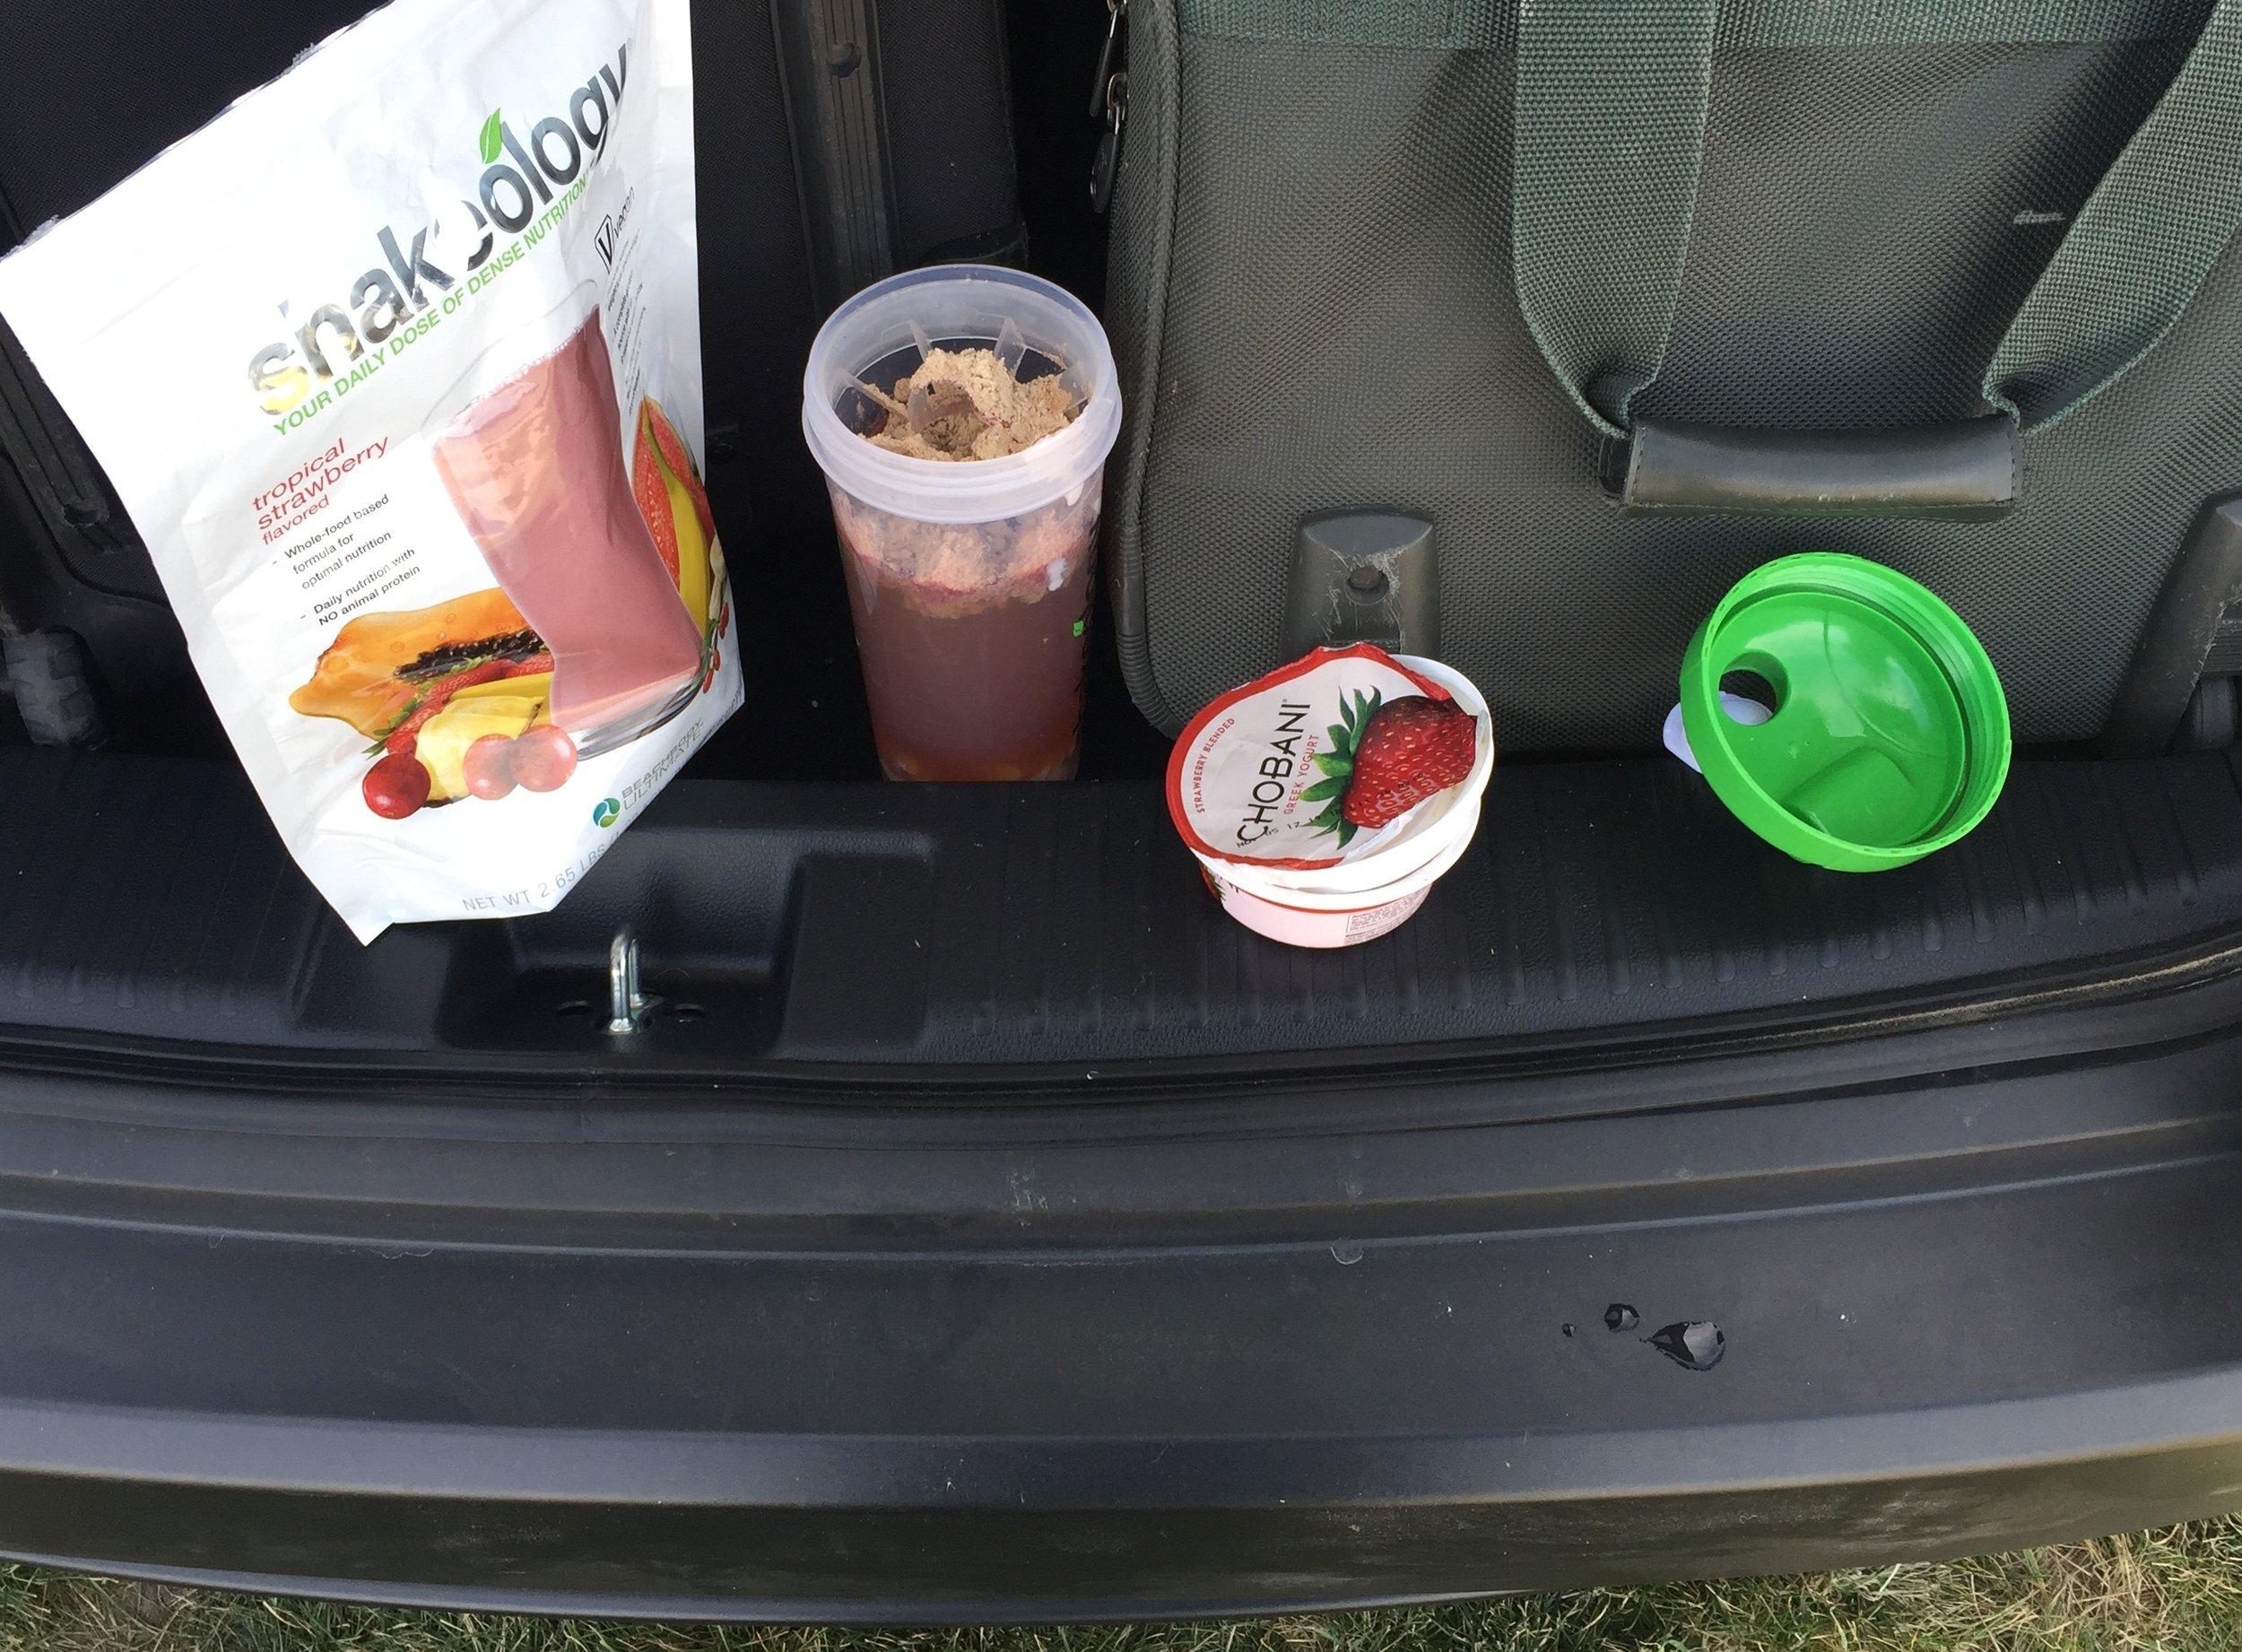 Here is a snack I made in the back of my car when traveling, with yogurt from a hotel breakfast! LOL, you heard right... a hotel complimentary breakfast at that!! I also use these shakes most days as a breakfast replacement because I am not big on breakfast but in this shakes I put fruits and even veggies with my super nutritious shake powder